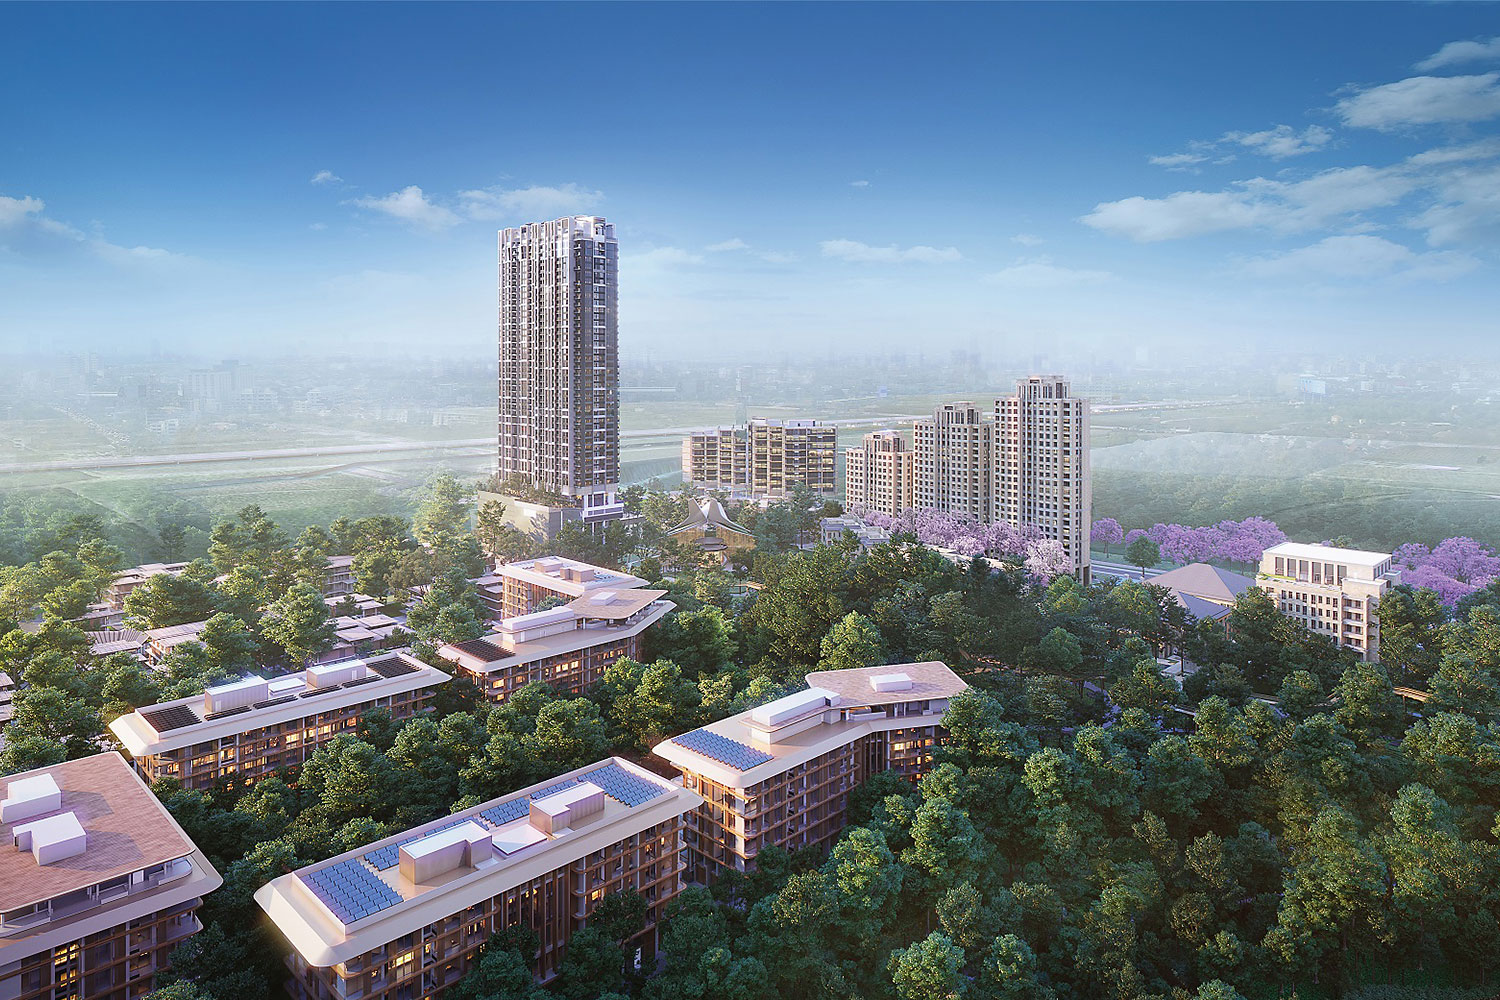 A digital rendition portrays the Forestias, a 125-billion-baht mixed-use development project on Bangna-Trad Road with a focus on sustainability, well-being and intergenerational living.